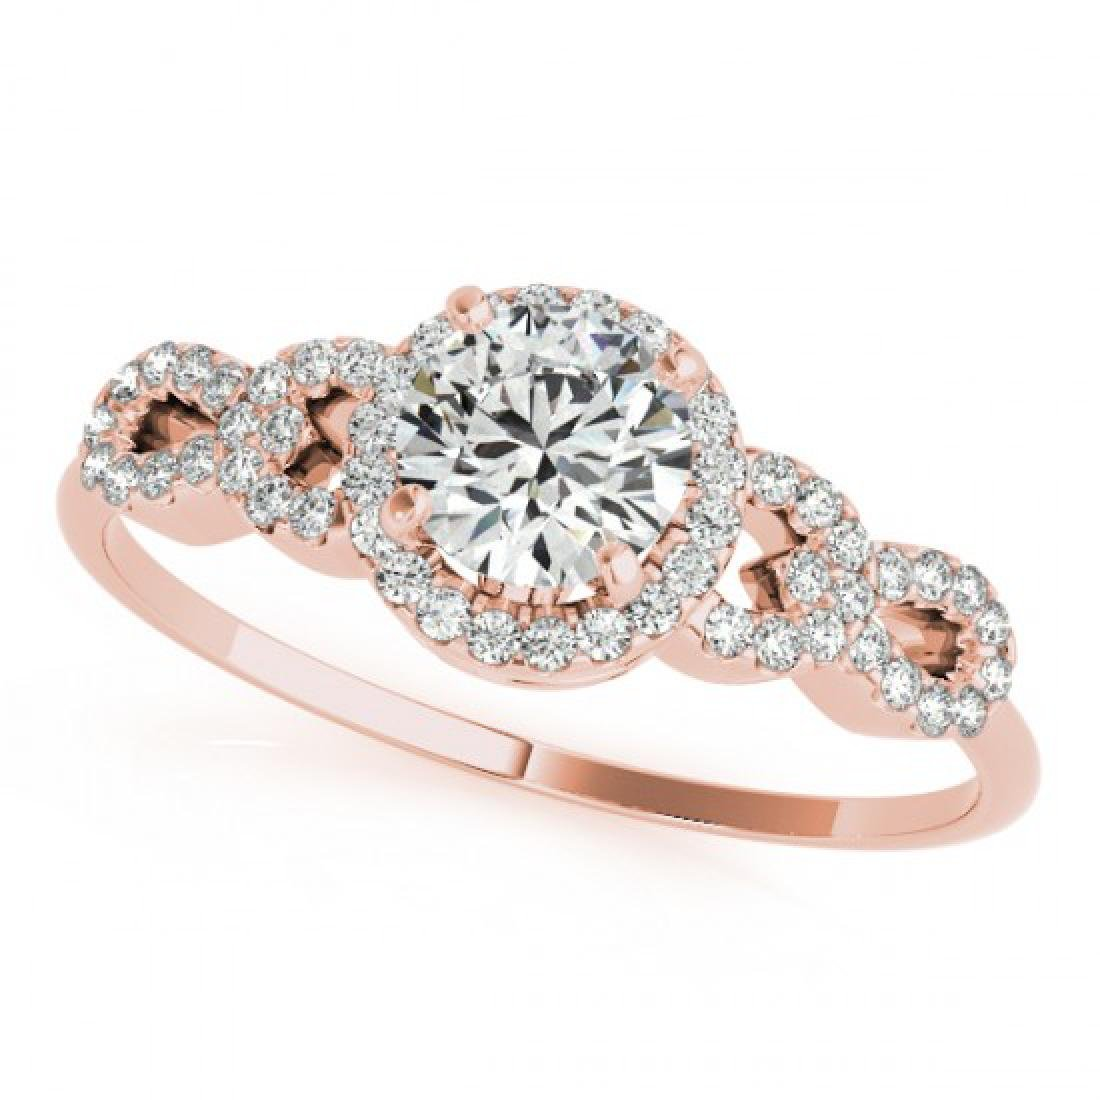 1.08 CTW Certified VS/SI Diamond Solitaire Ring 14K